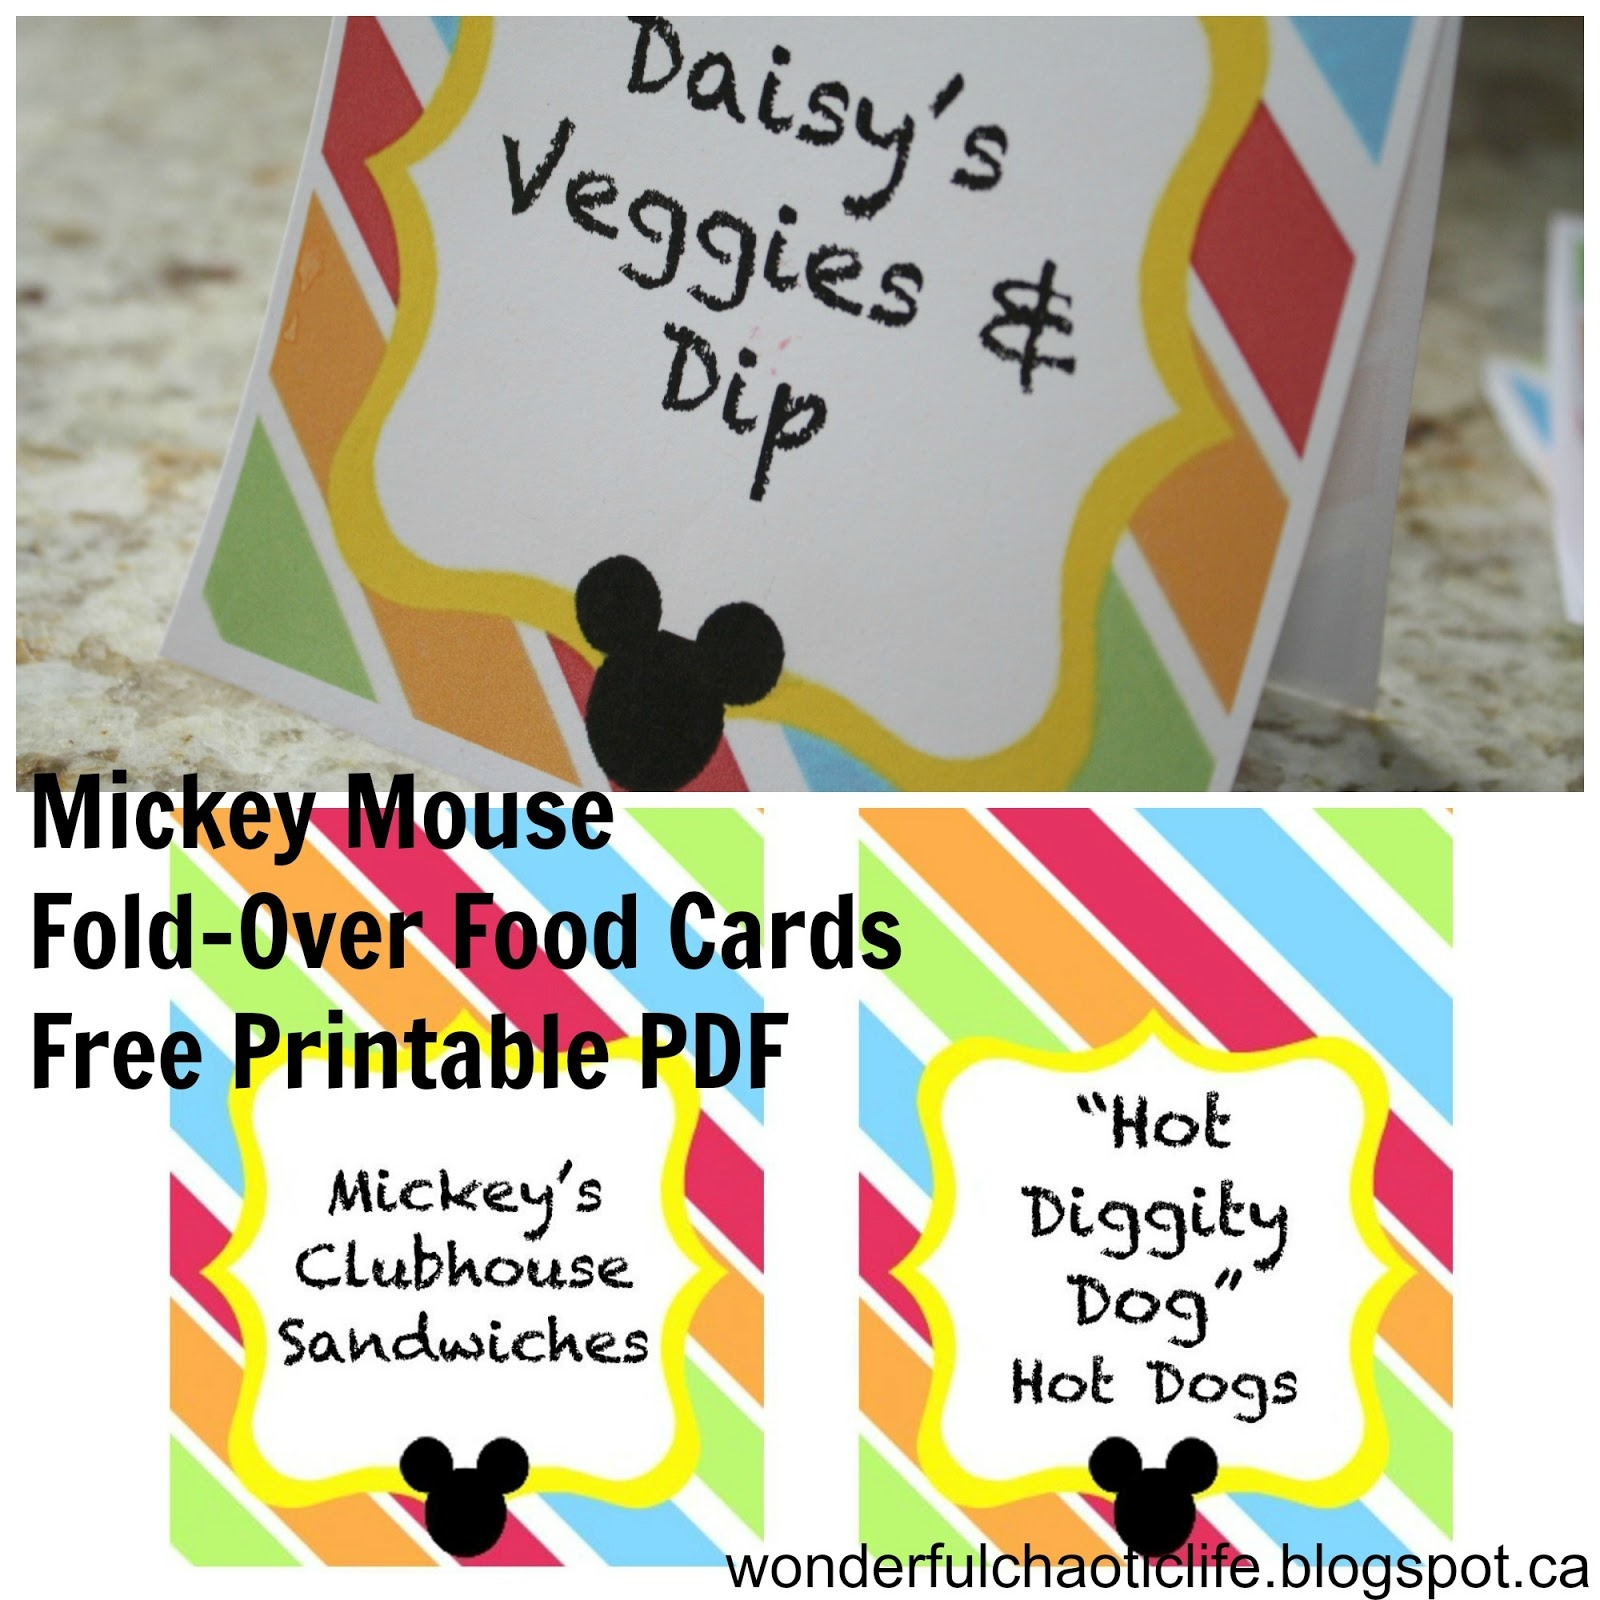 It's My Wonderful Chaotic Life: Mickey Mouse Birthday Party Free - Mickey Mouse Clubhouse Free Printables